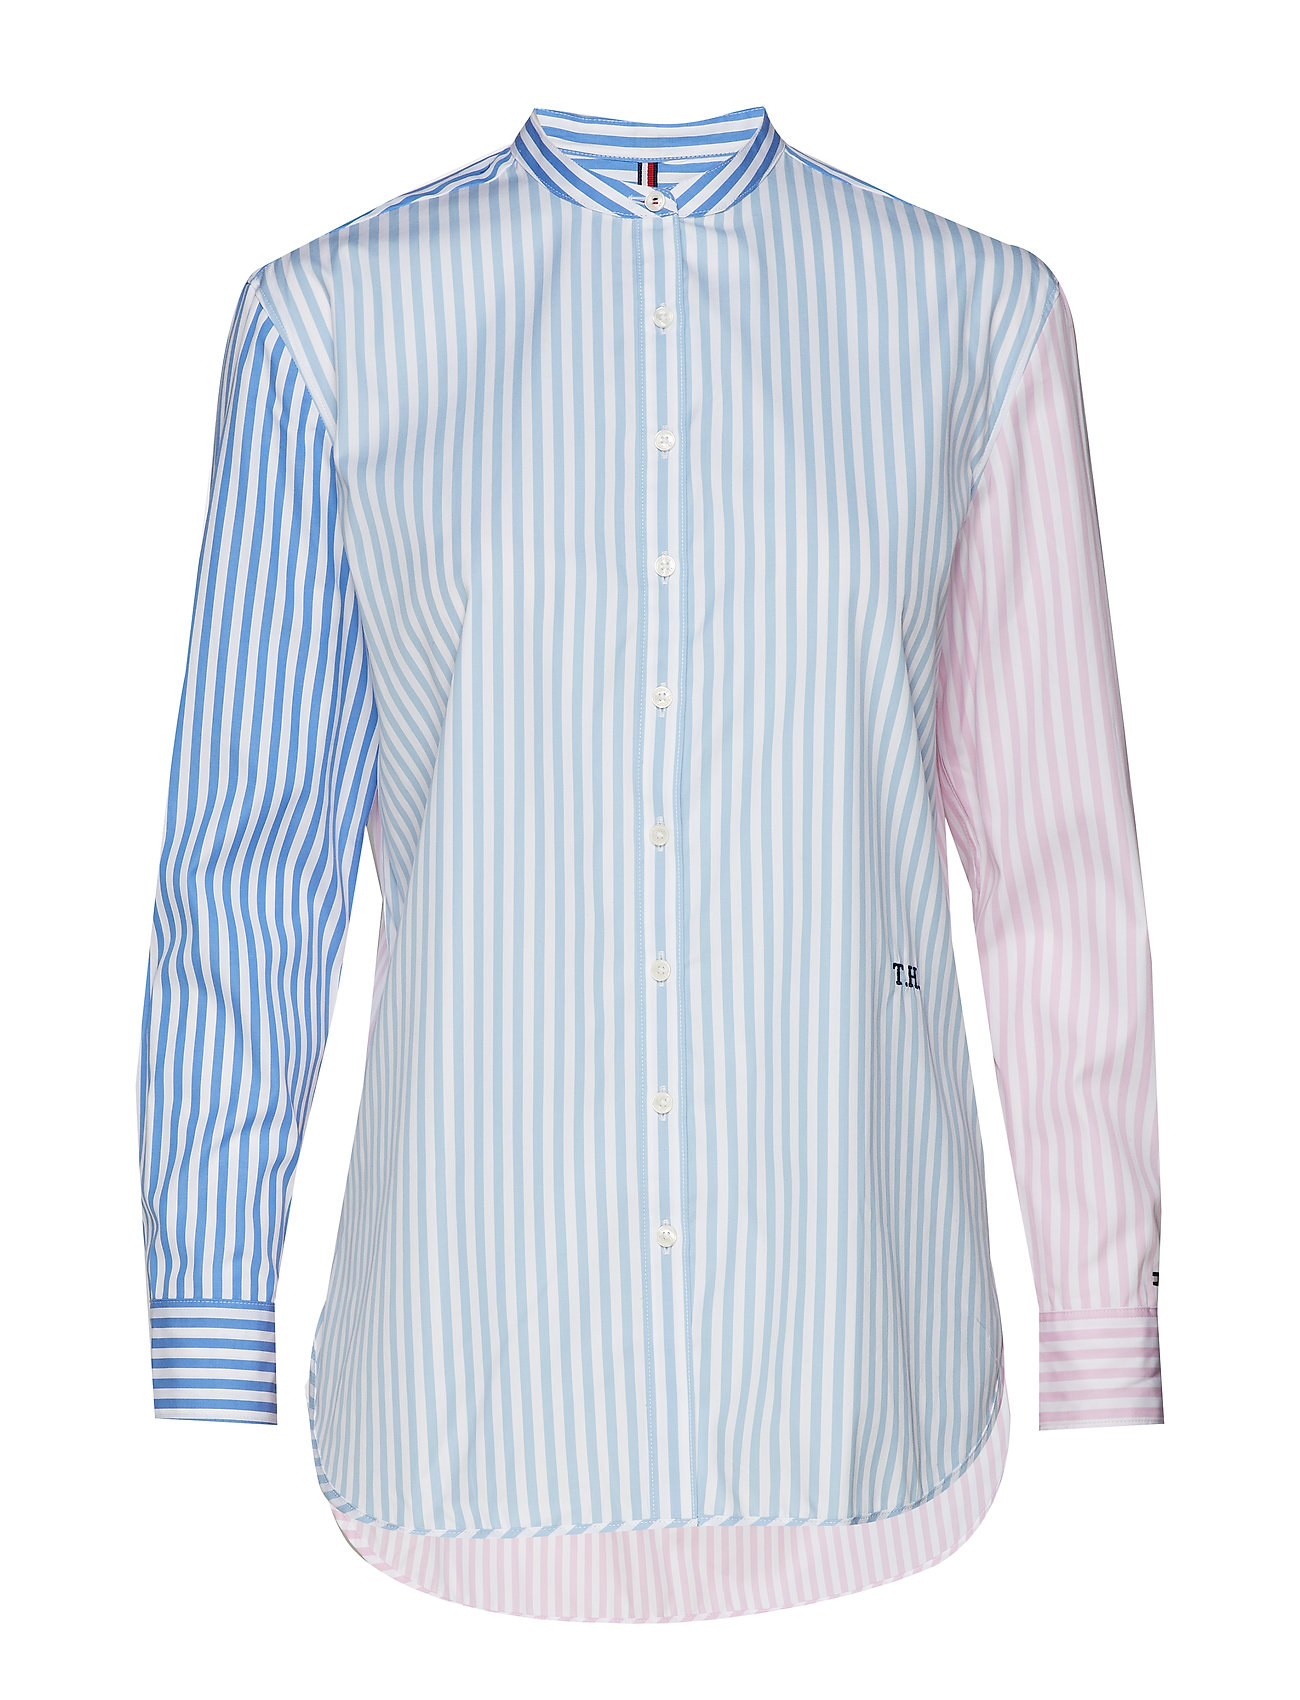 Tommy Hilfiger TH ESSENTIAL GIRLFRIEND SHIRT LS - BANKER STP /  MULTI